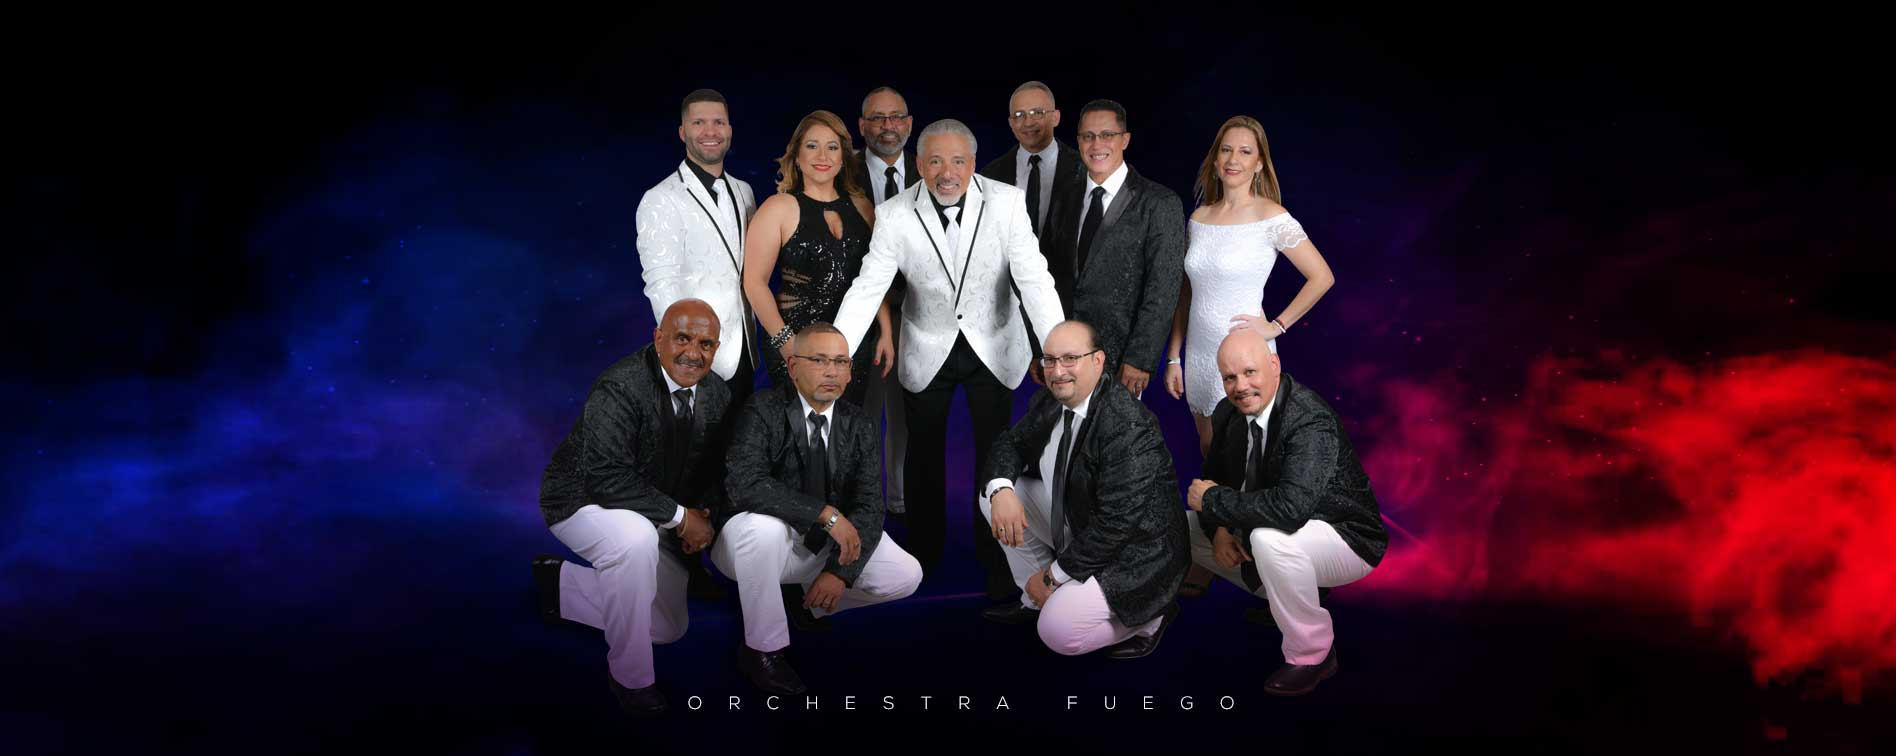 Orchestra-Fuego-Latin-Band-Music-Salsa